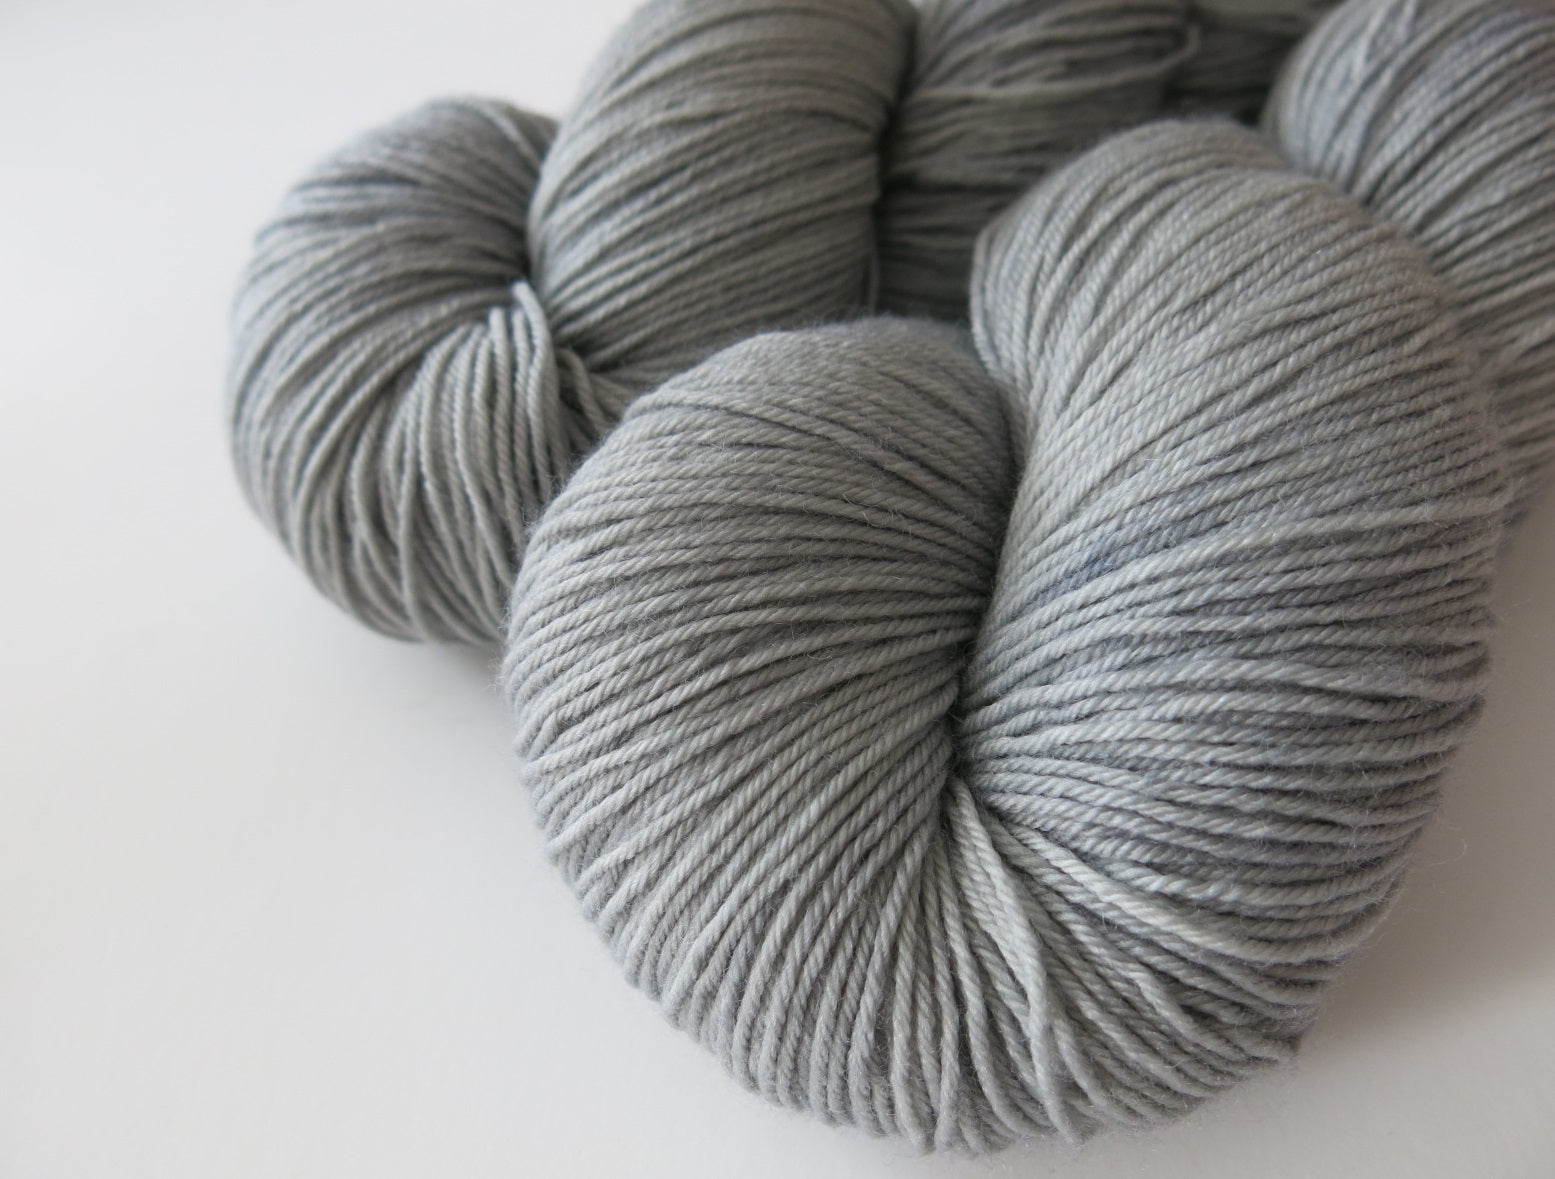 kettle dyed grey superwash merino wool for crafts